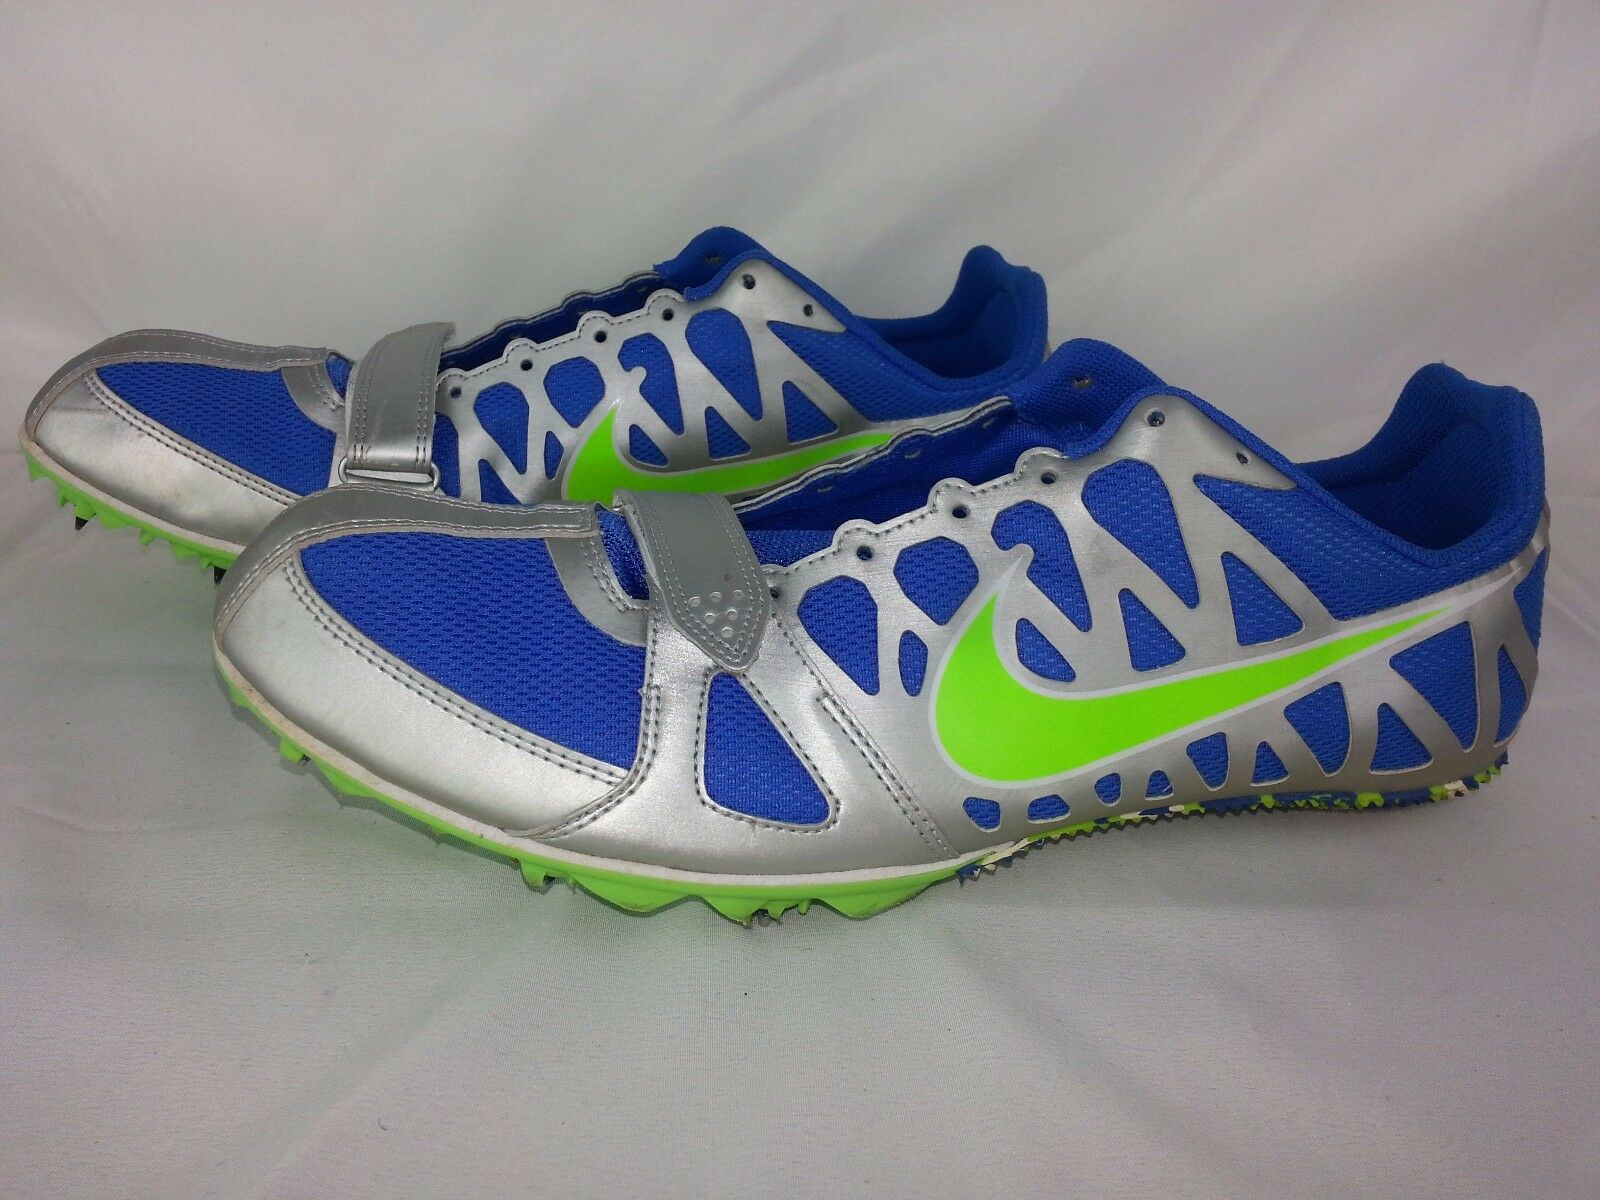 NIKE SPRINT TRACK AND FIELD MEN'S RUNNING SHOES ZOOM RIVAL S US 12 Casual wild